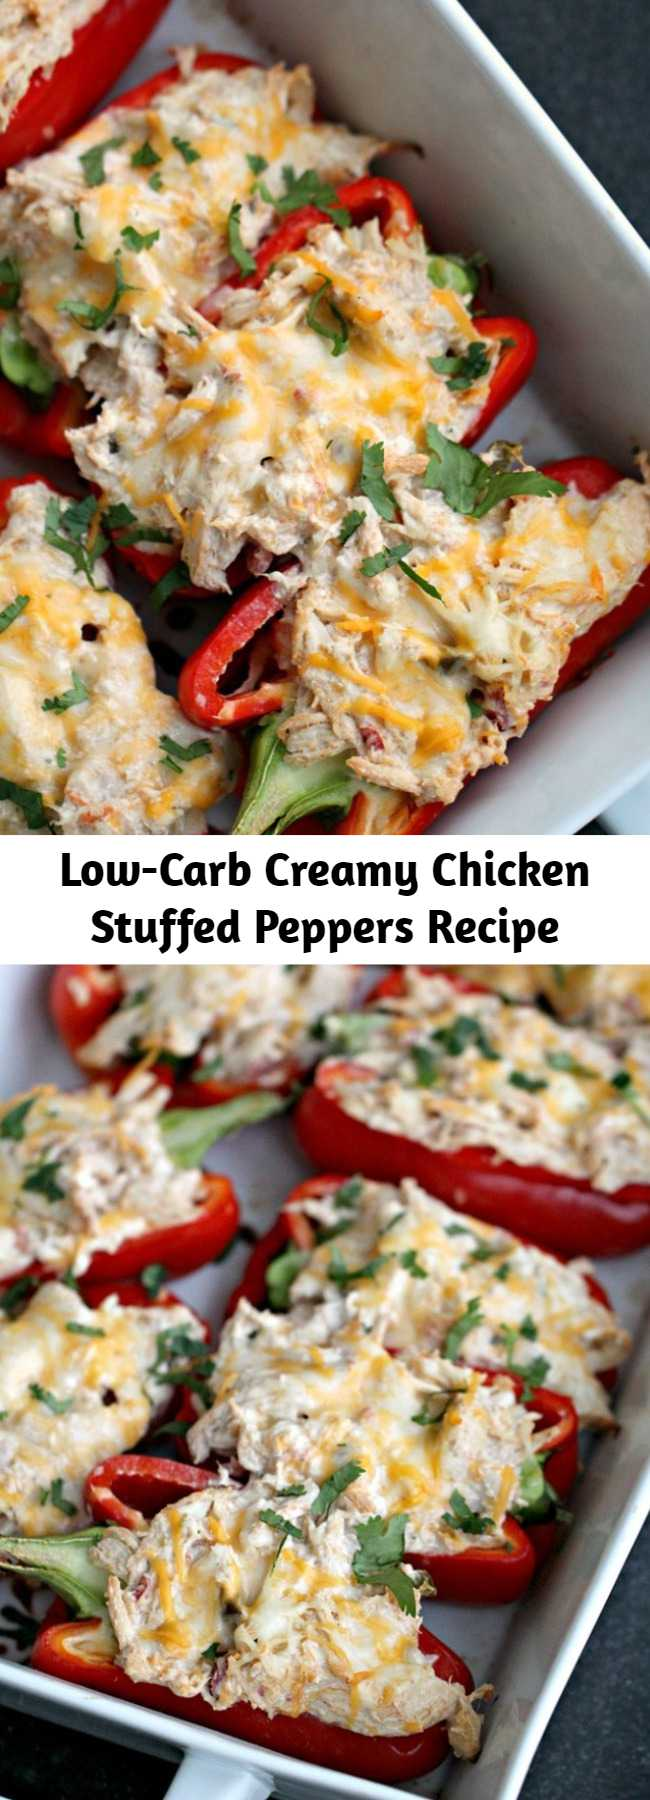 Low-Carb Creamy Chicken Stuffed Peppers Recipe - A delicious and healthy low-carb meal that's ready in minutes. These Creamy Chicken Stuffed Peppers will soon become a favorite at your house. Made using chicken that has been cooked and shredded, light cream cheese, jalapeno, spices, and salsa and then topped with some fresh cilantro - it's low-carb dinner perfection!